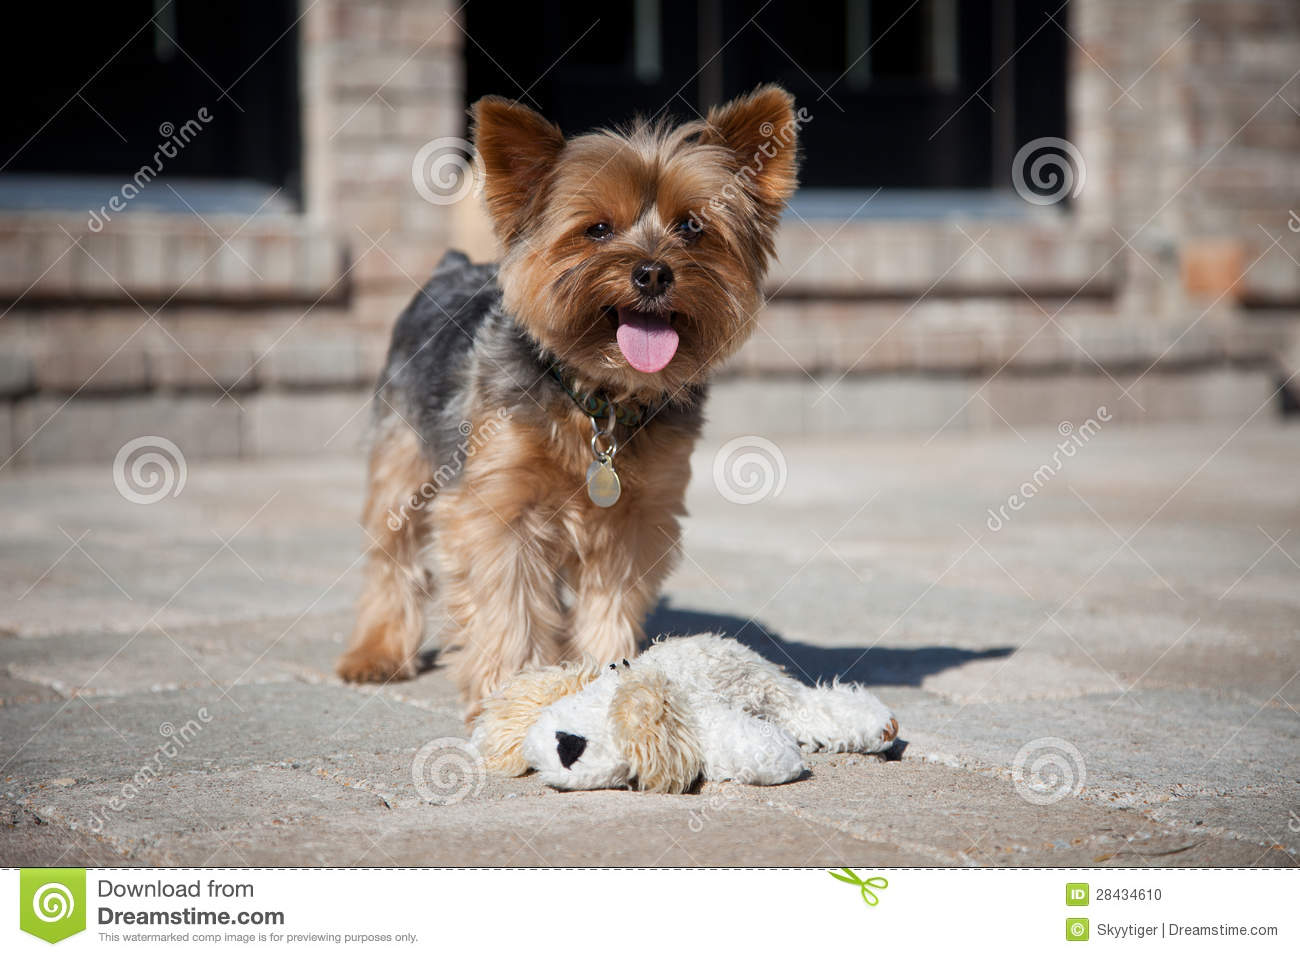 Yorkie Standing On Stone Patio Tongue Hanging Out Wearing Collar And